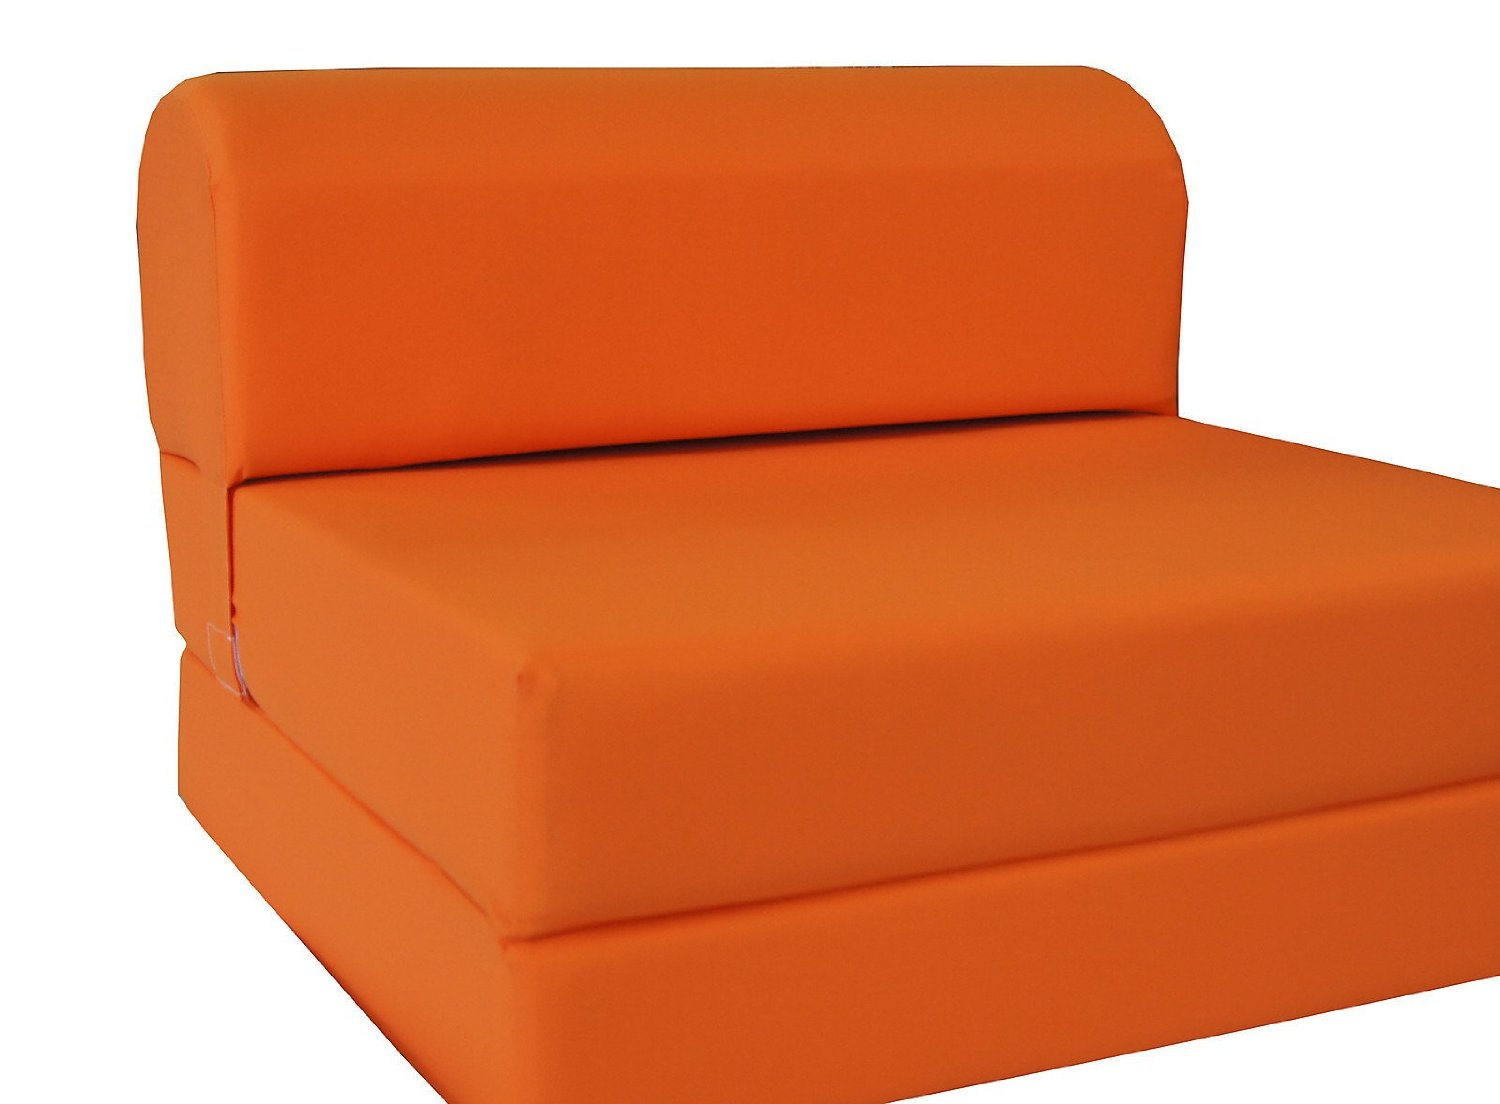 Pleasant Buy Orange Sleeper Chair Folding Foam Bed Sized 6 Thick X Short Links Chair Design For Home Short Linksinfo